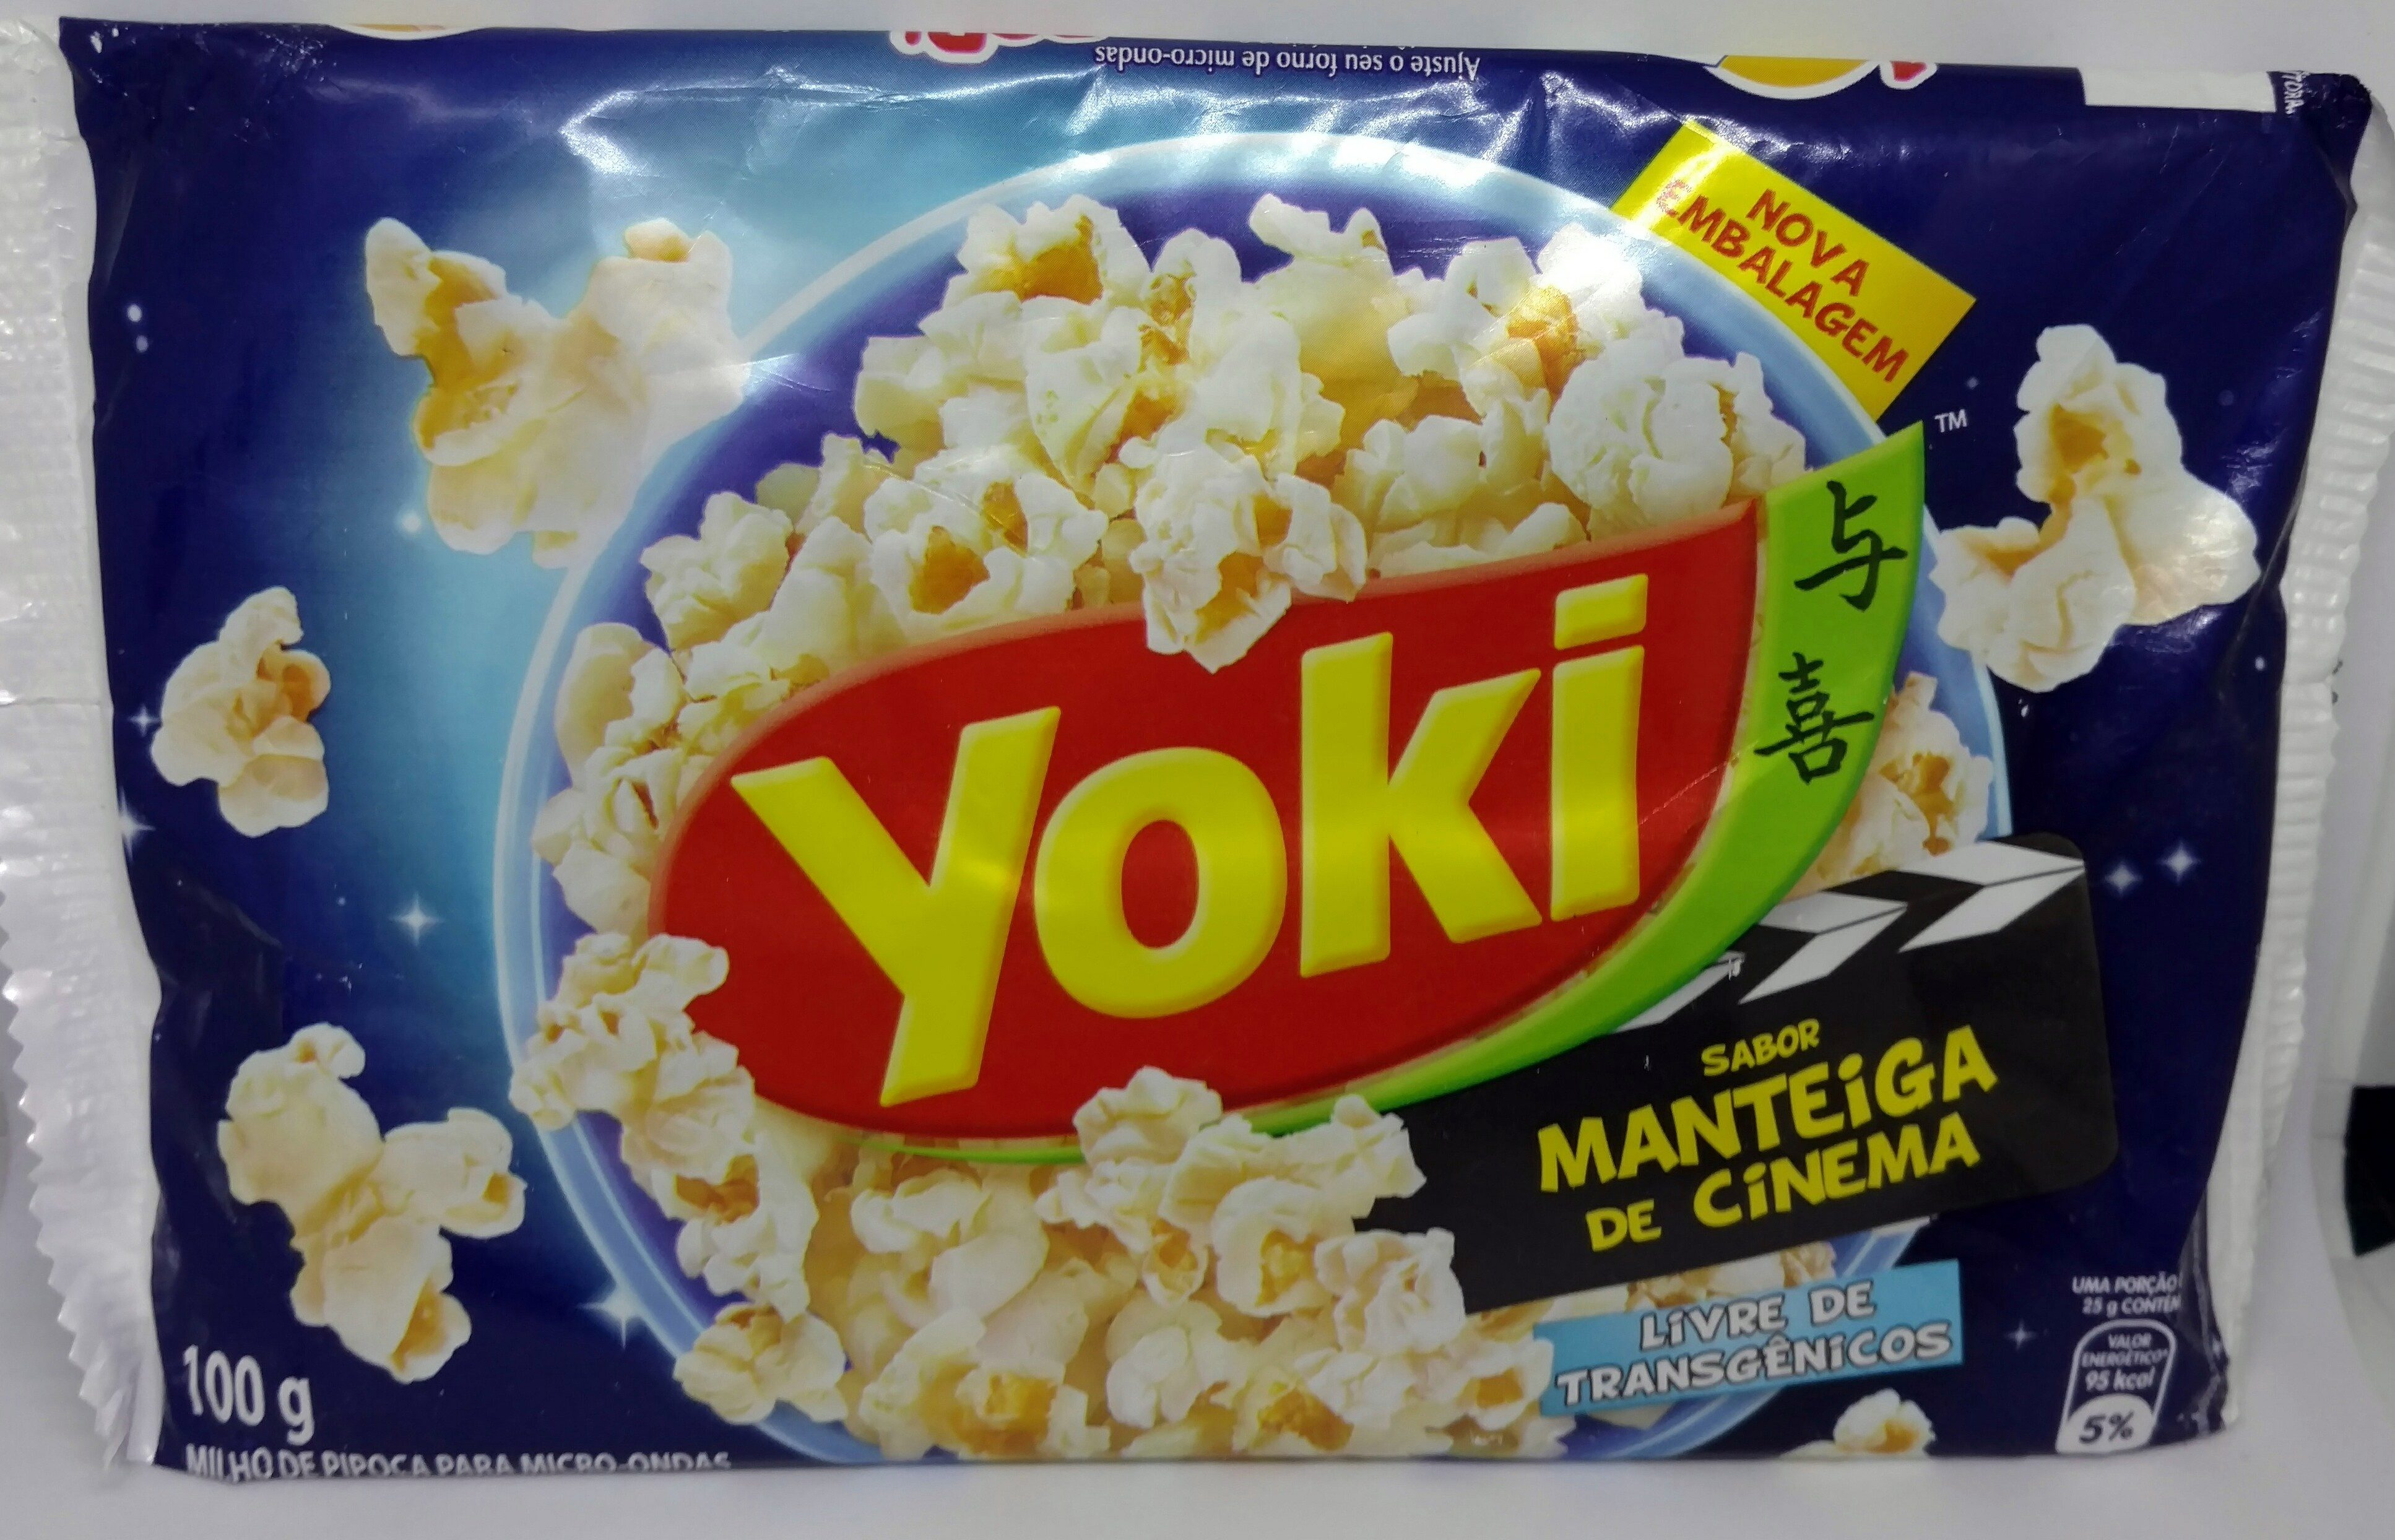 Yoki sabor manteiga de cinema - Product